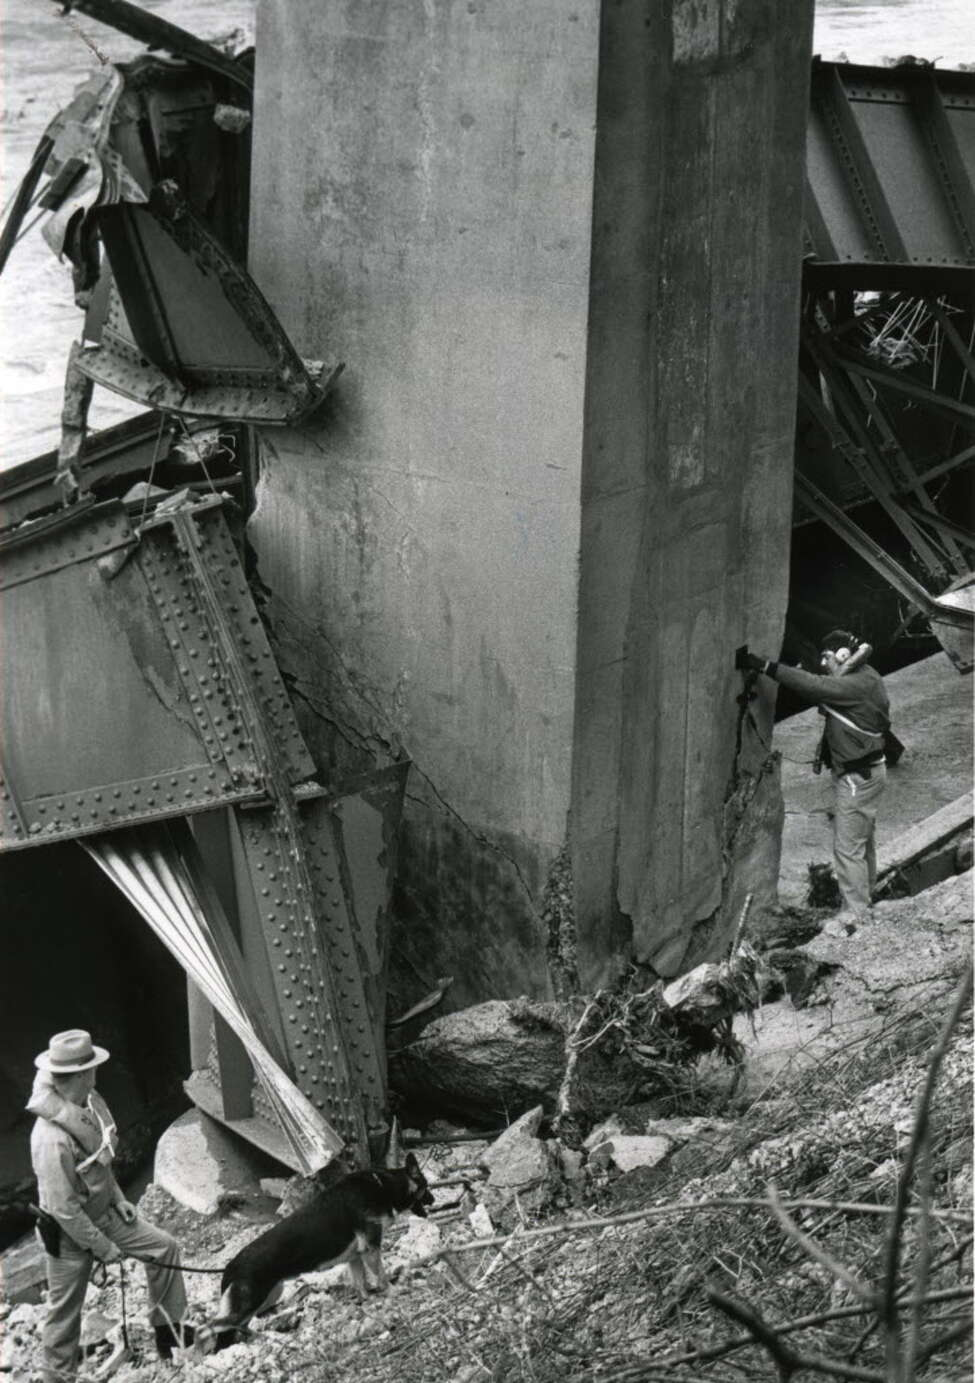 Days after Schoharie Creek Thruway bridge collapse, Trooper Raymond Marshal, left, searches the Schoharie Creek shoreline as Sgt. John Curry, right, uses an audio device to detect for movement in one the bridge supports, April 15, 1987. (Fred McKinney / Times Union archive)